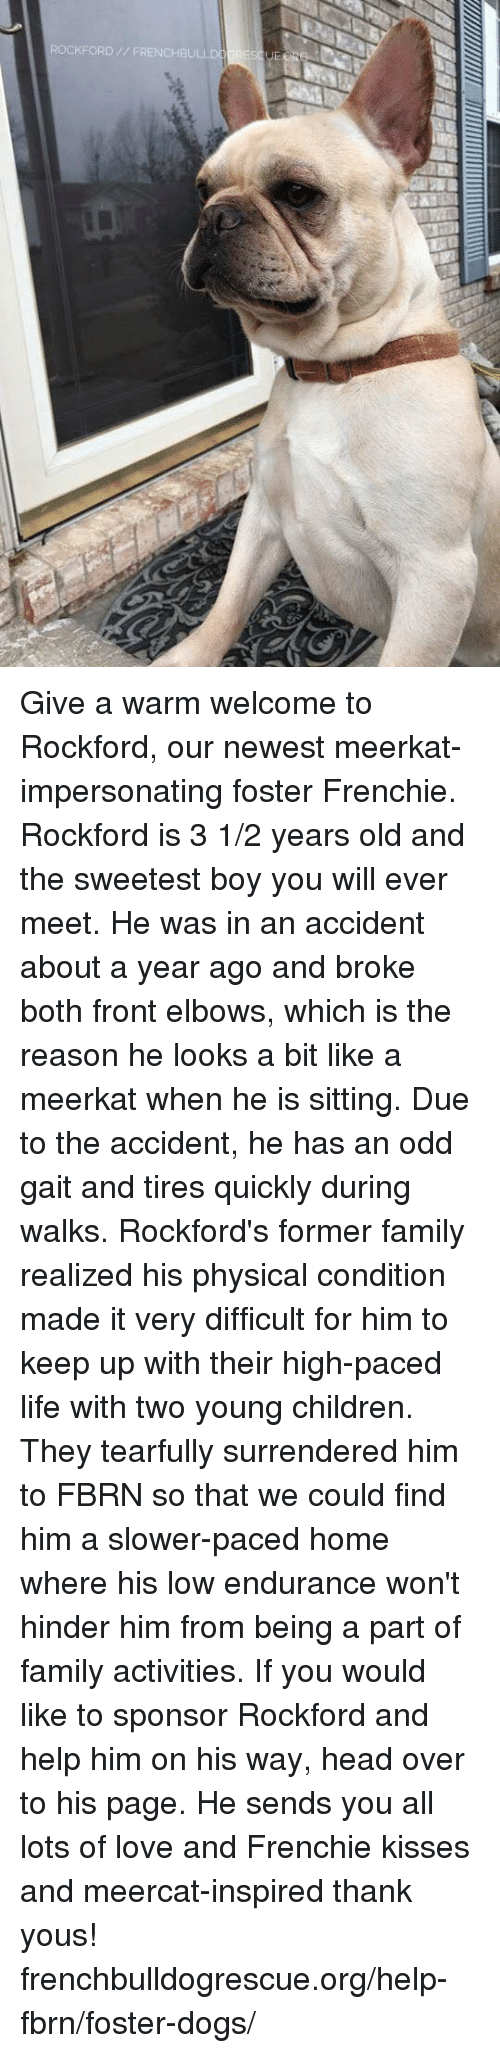 Memes, Meerkat, and 🤖: ROCKFORD // FRENCHBULLD RESSUER Give a warm welcome to Rockford, our newest meerkat-impersonating foster Frenchie. Rockford is 3 1/2 years old and the sweetest boy you will ever meet. He was in an accident about a year ago and broke both front elbows, which is the reason he looks a bit like a meerkat when he is sitting. Due to the accident, he has an odd gait and tires quickly during walks. Rockford's former family realized his physical condition made it very difficult for him to keep up with their high-paced life with two young children. They tearfully surrendered him to FBRN so that we could find him a slower-paced home where his low endurance won't hinder him from being a part of family activities.  If you would like to sponsor Rockford and help him on his way, head over to his page. He sends you all lots of love and Frenchie kisses and meercat-inspired thank yous! frenchbulldogrescue.org/help-fbrn/foster-dogs/